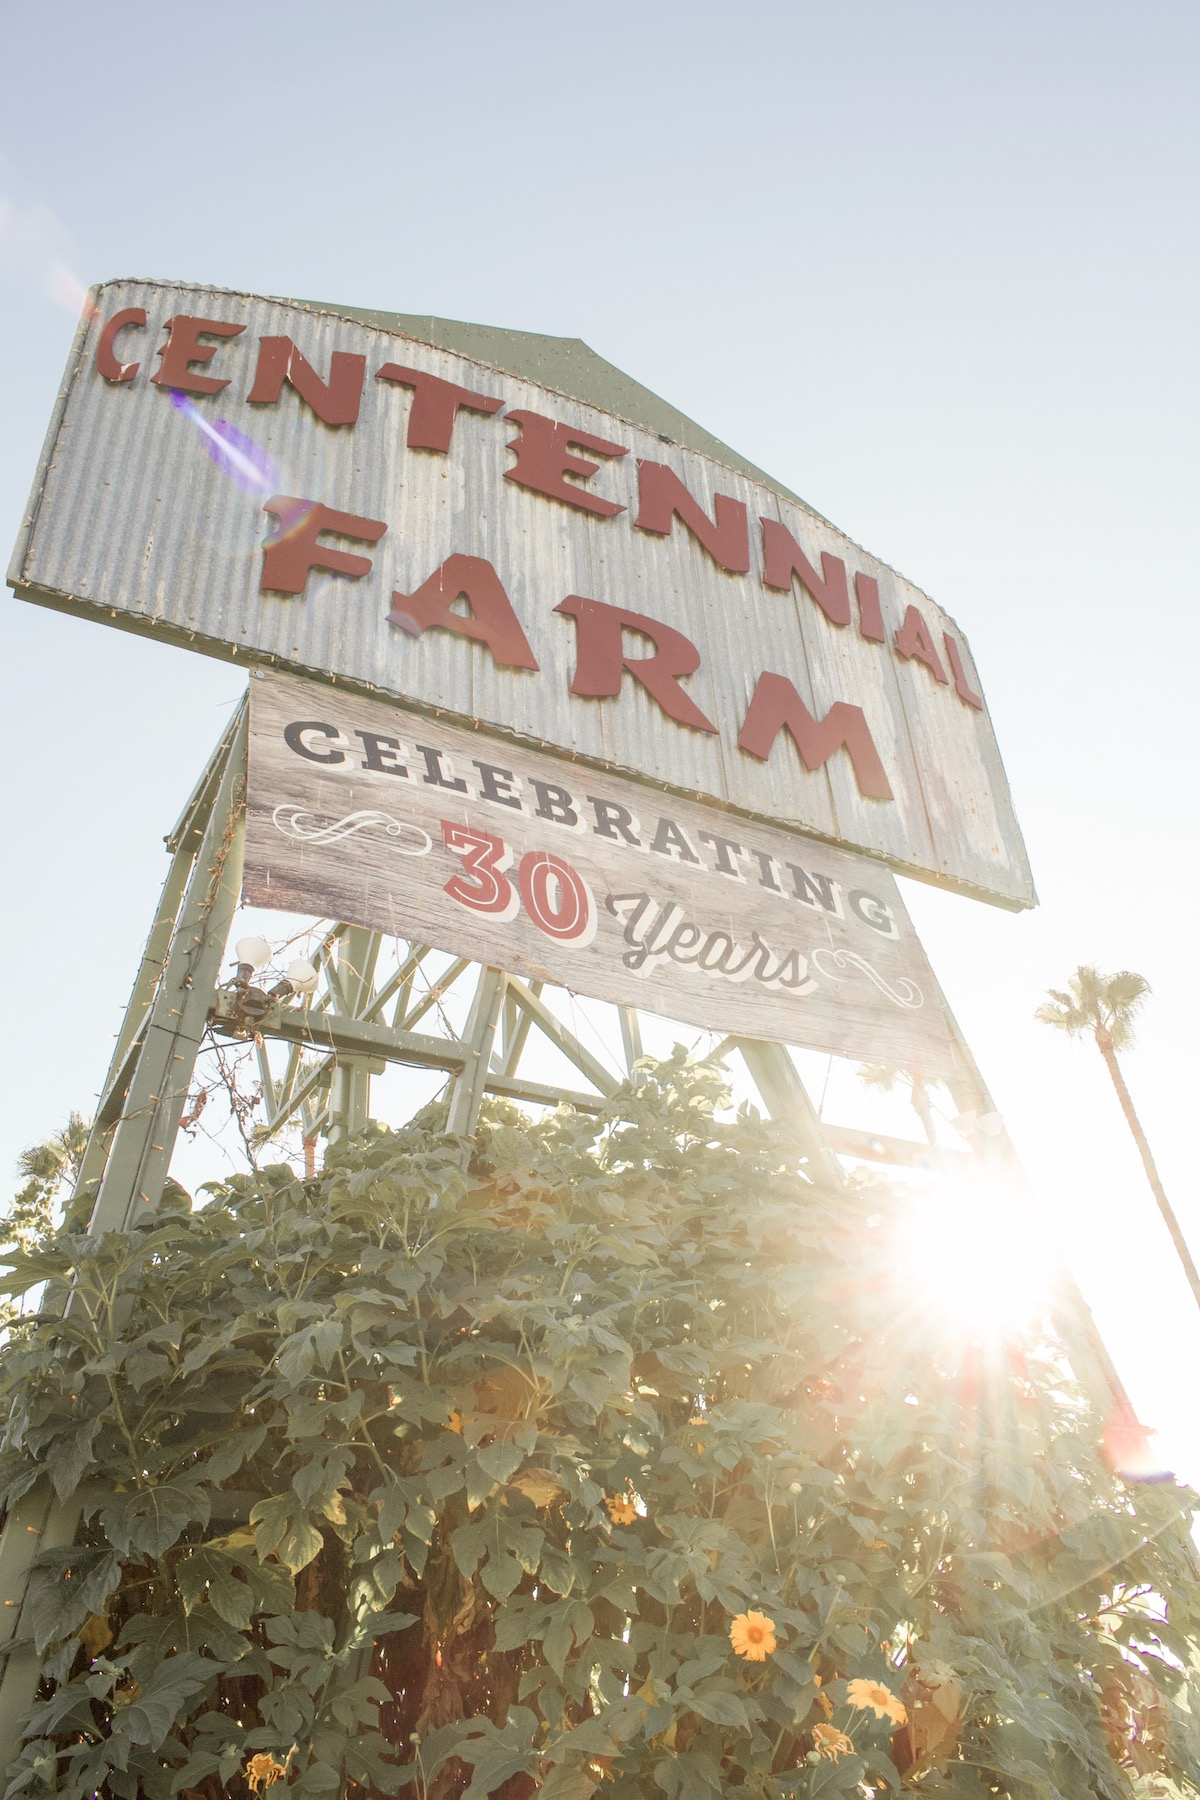 centennial farm oc fair 2019